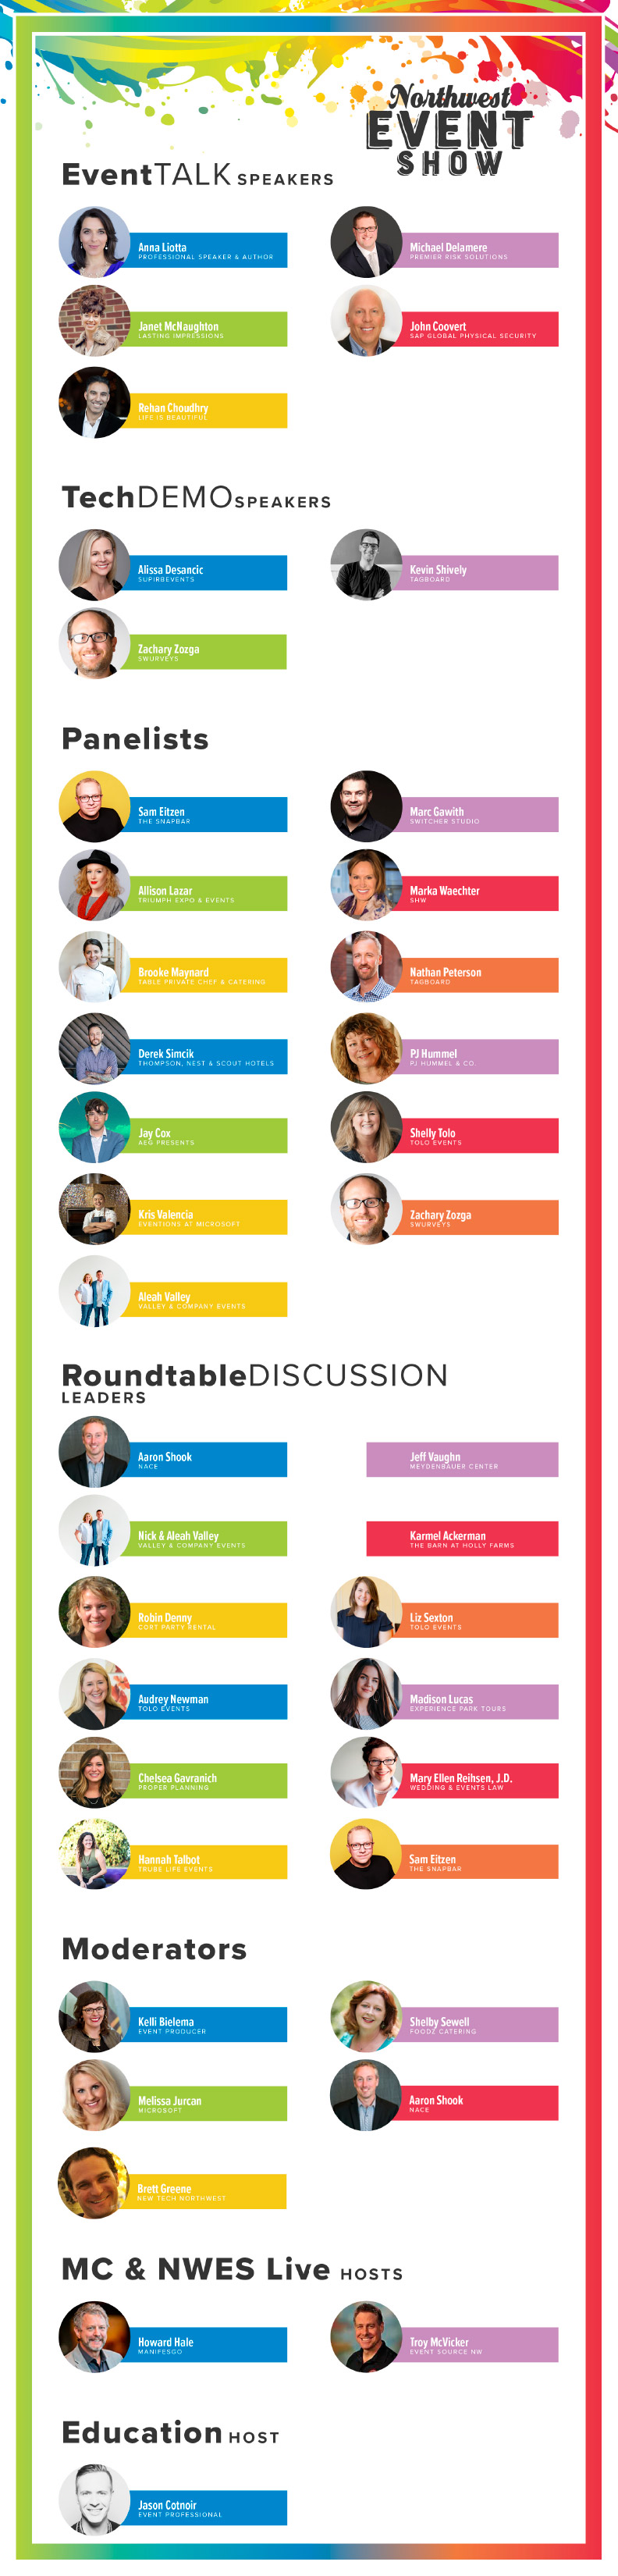 Download pdf of Speakers, Moderators & Hosts by clicking on graphic.